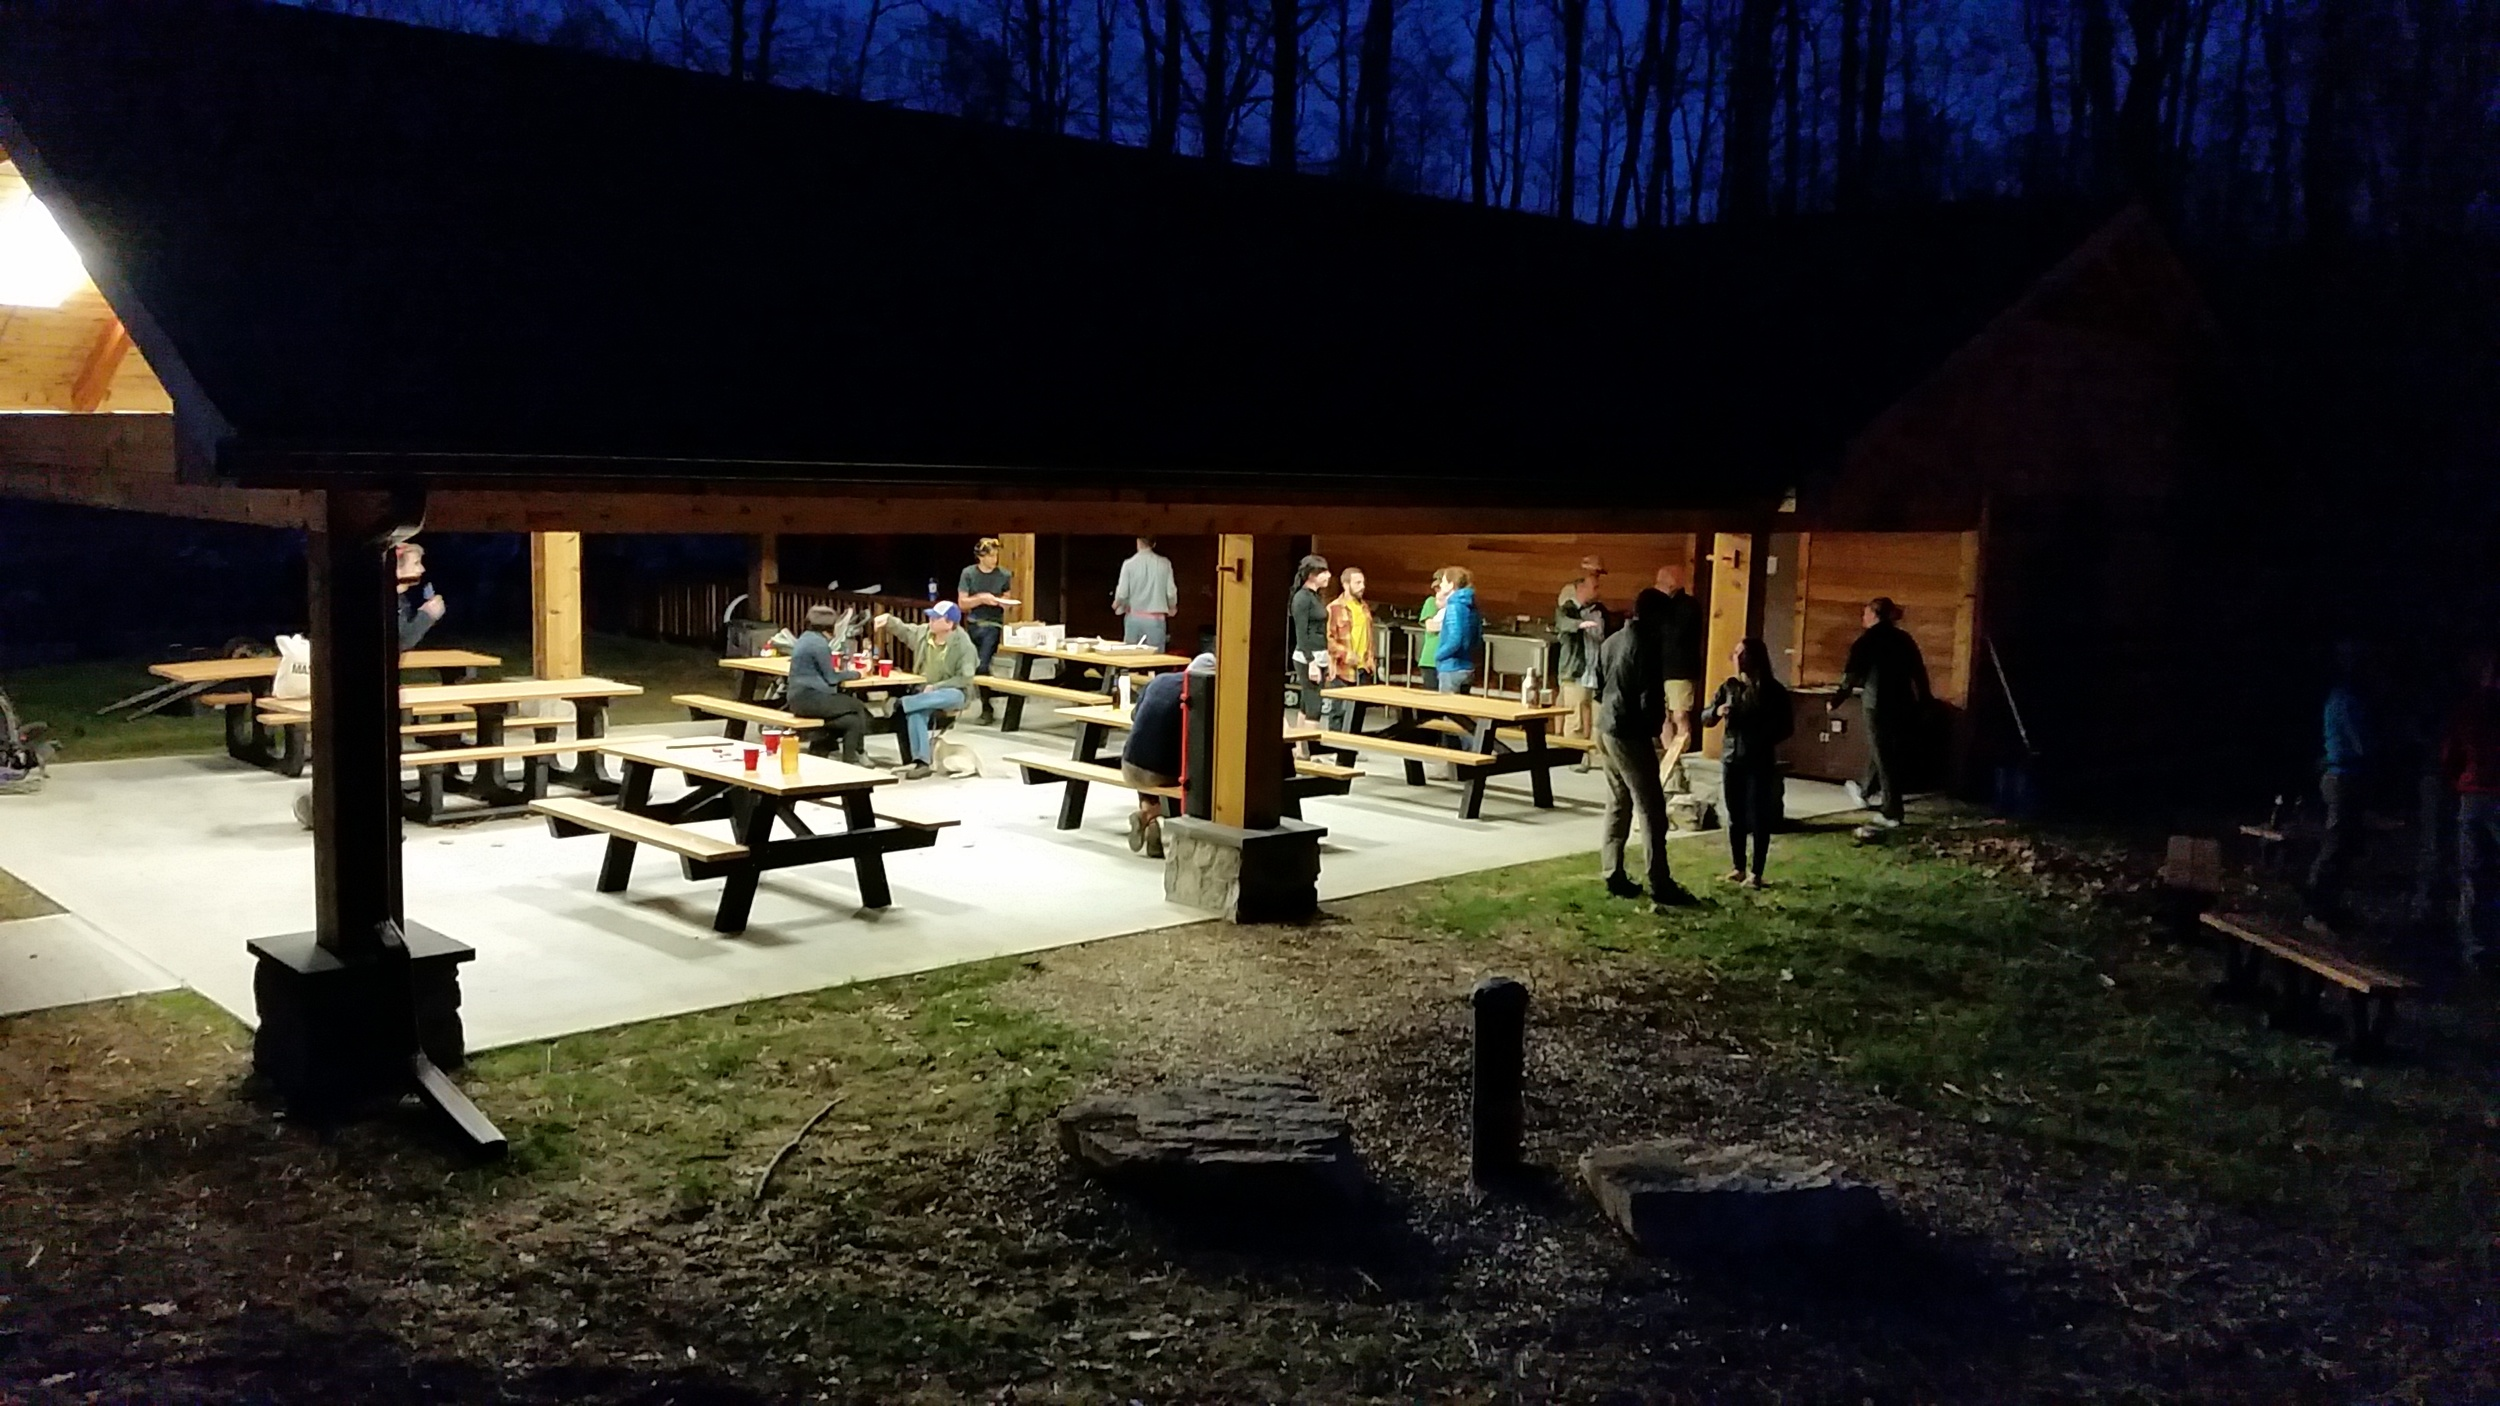 The Campground Pavilion